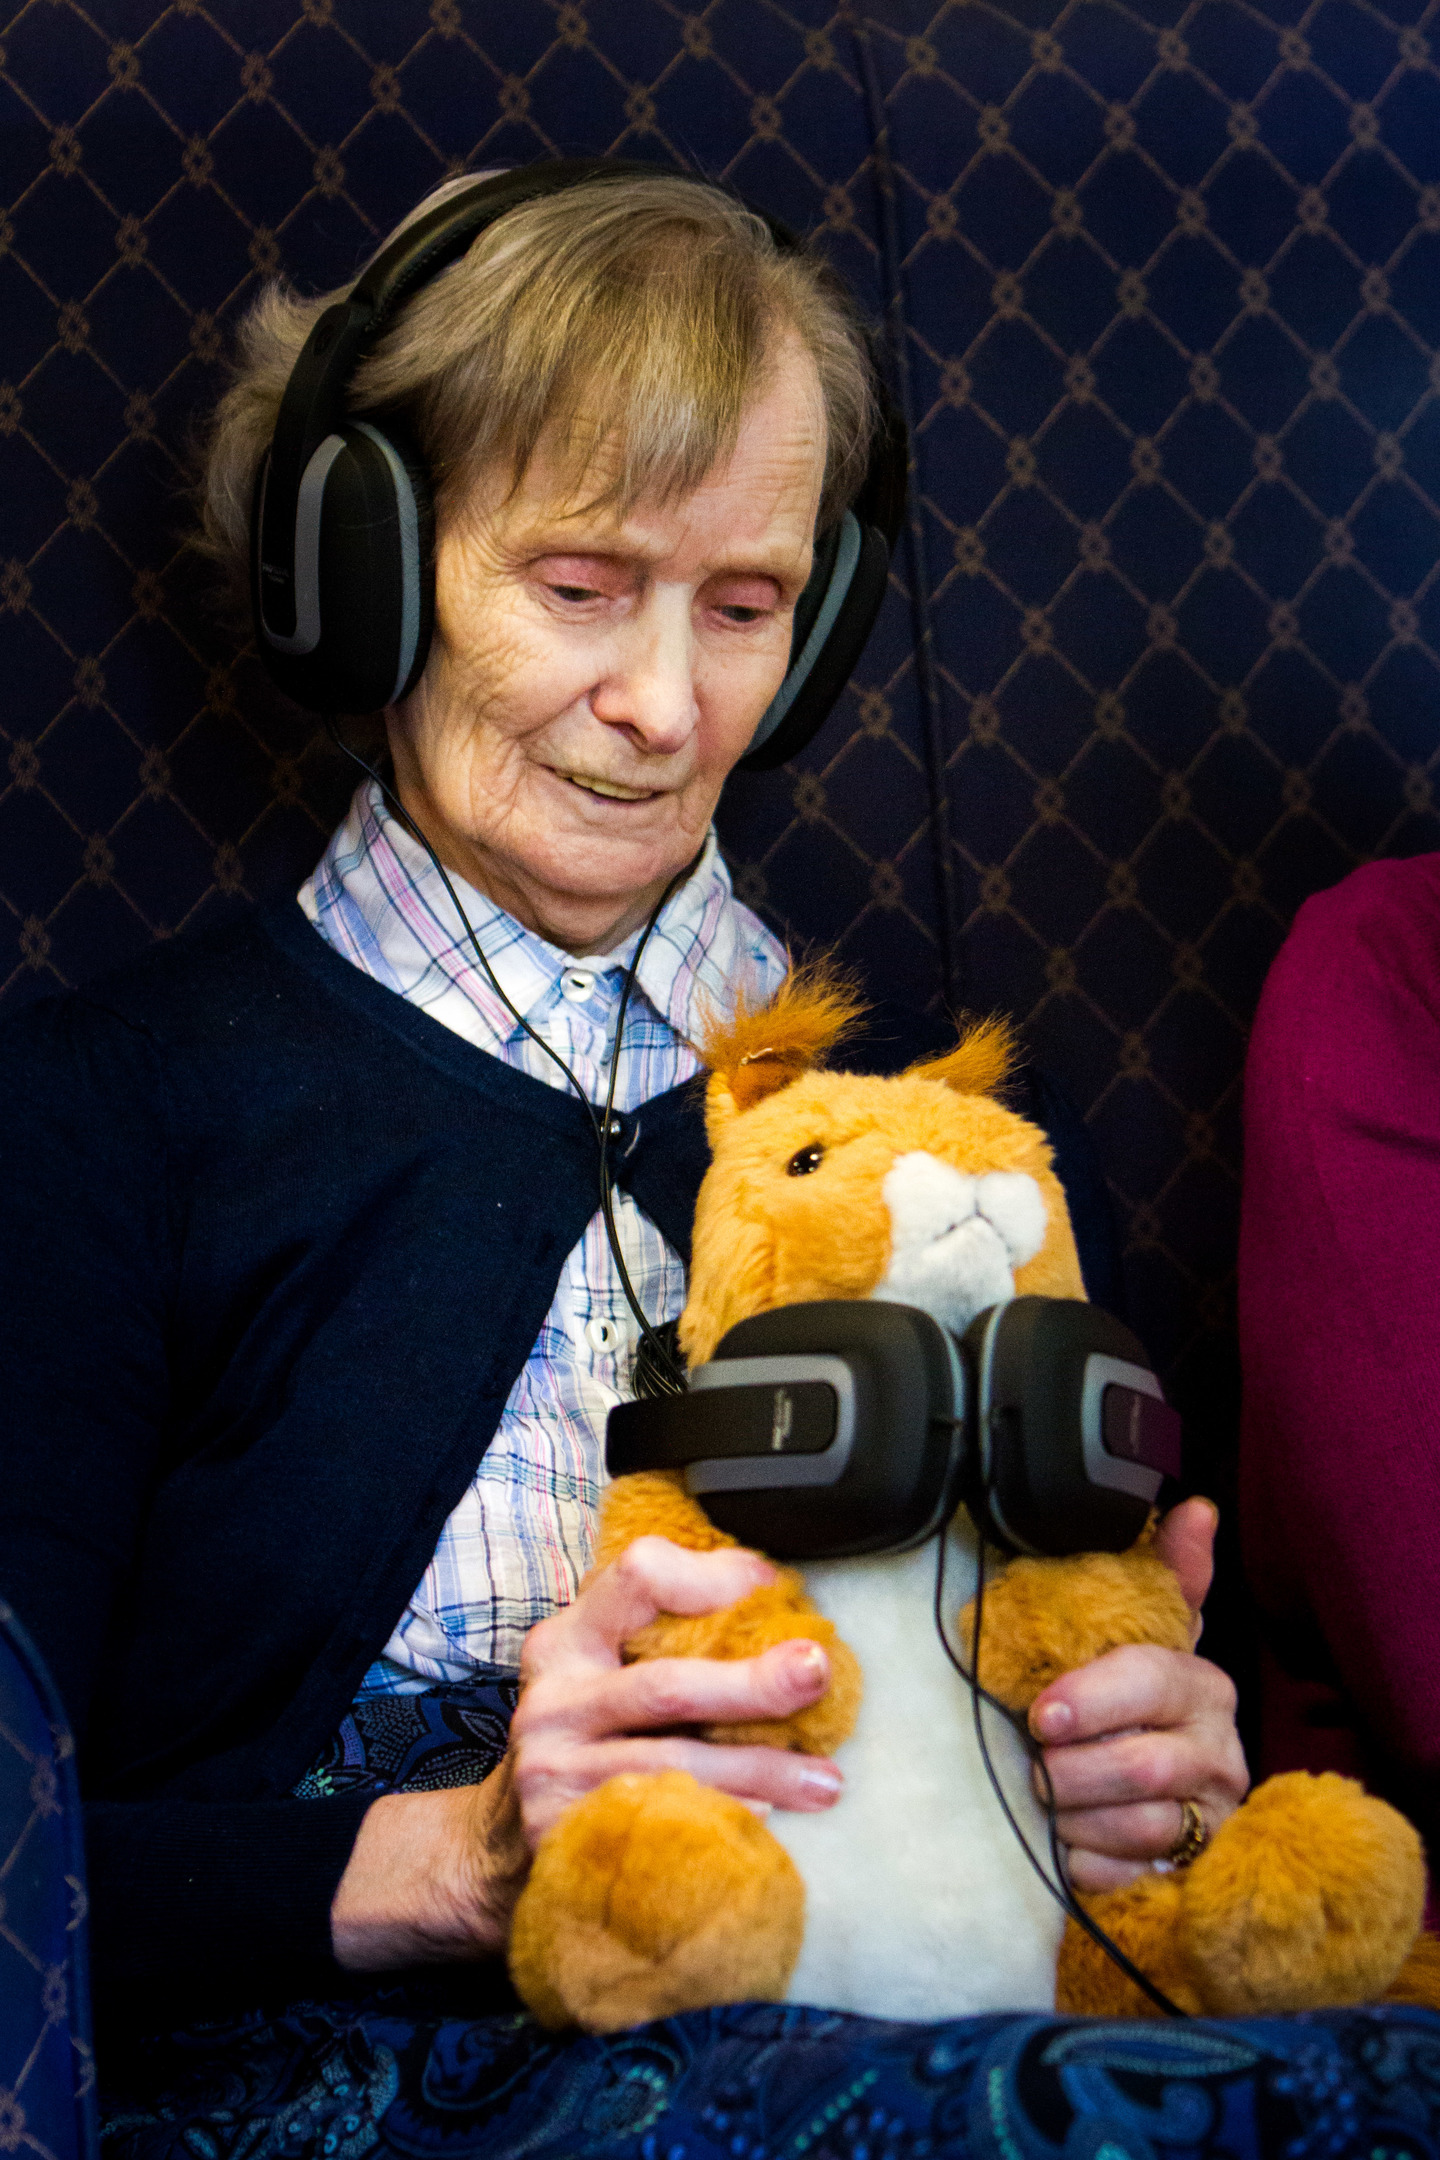 Louisebrae resident Cecilia and teddy enjoy the music.